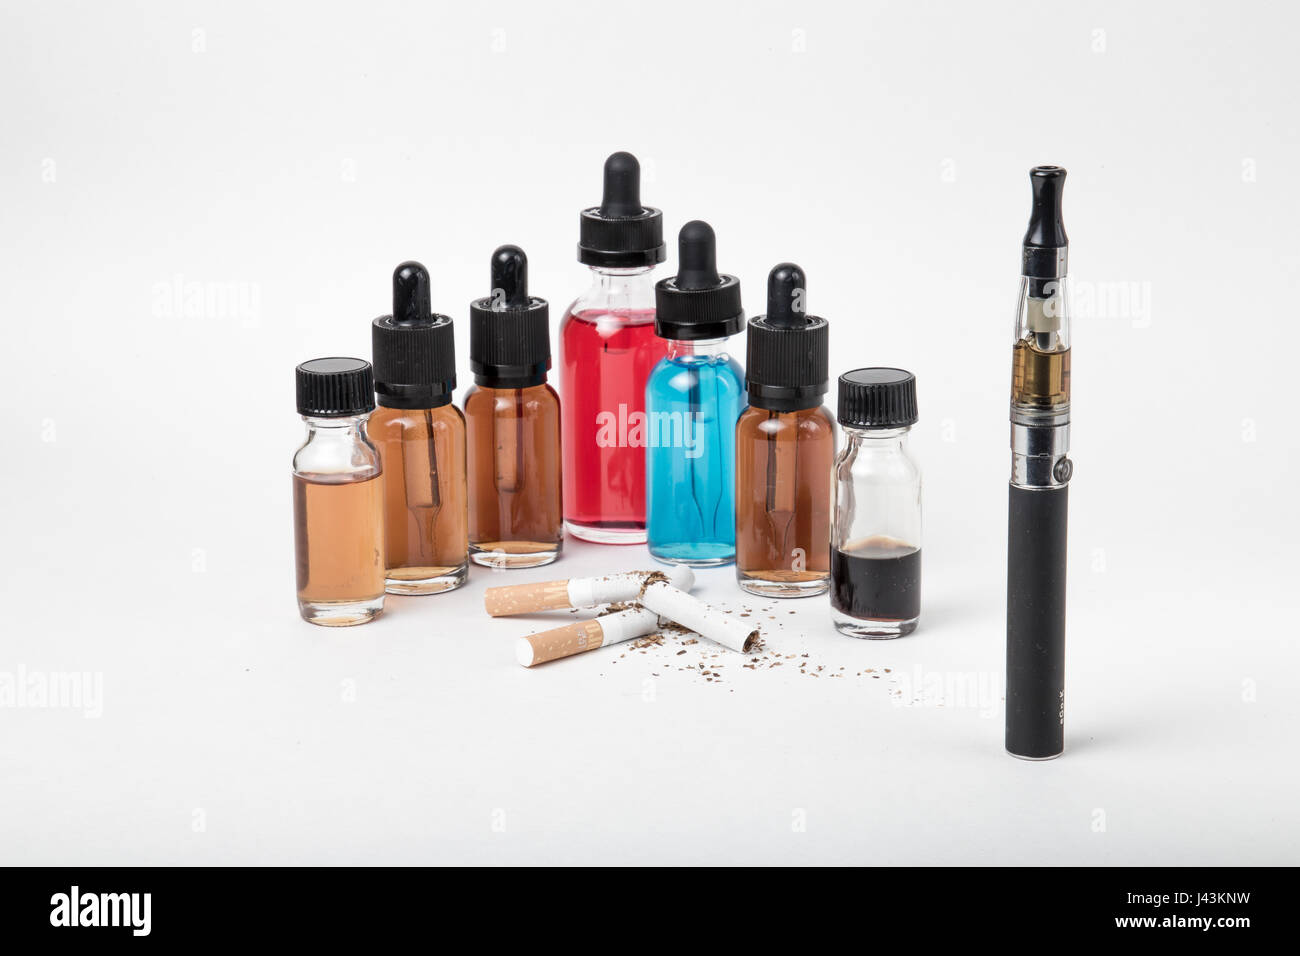 Many bottles of e-juice and vaporizer and pile of tobacco cigarettes - Stock Image